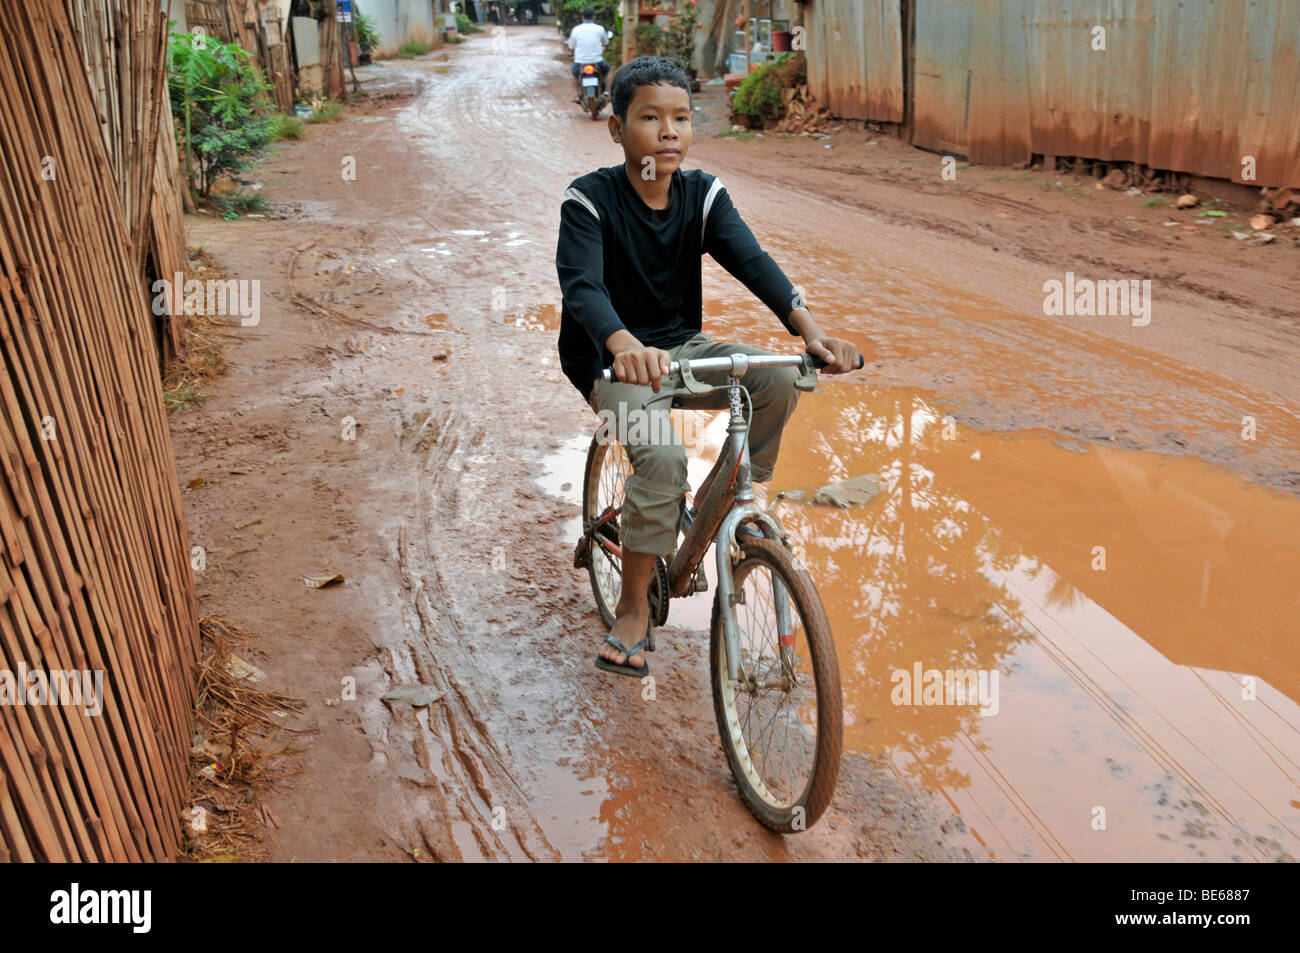 Street in the slums of Siem Reap, Cambodia, Asia Stock Photo